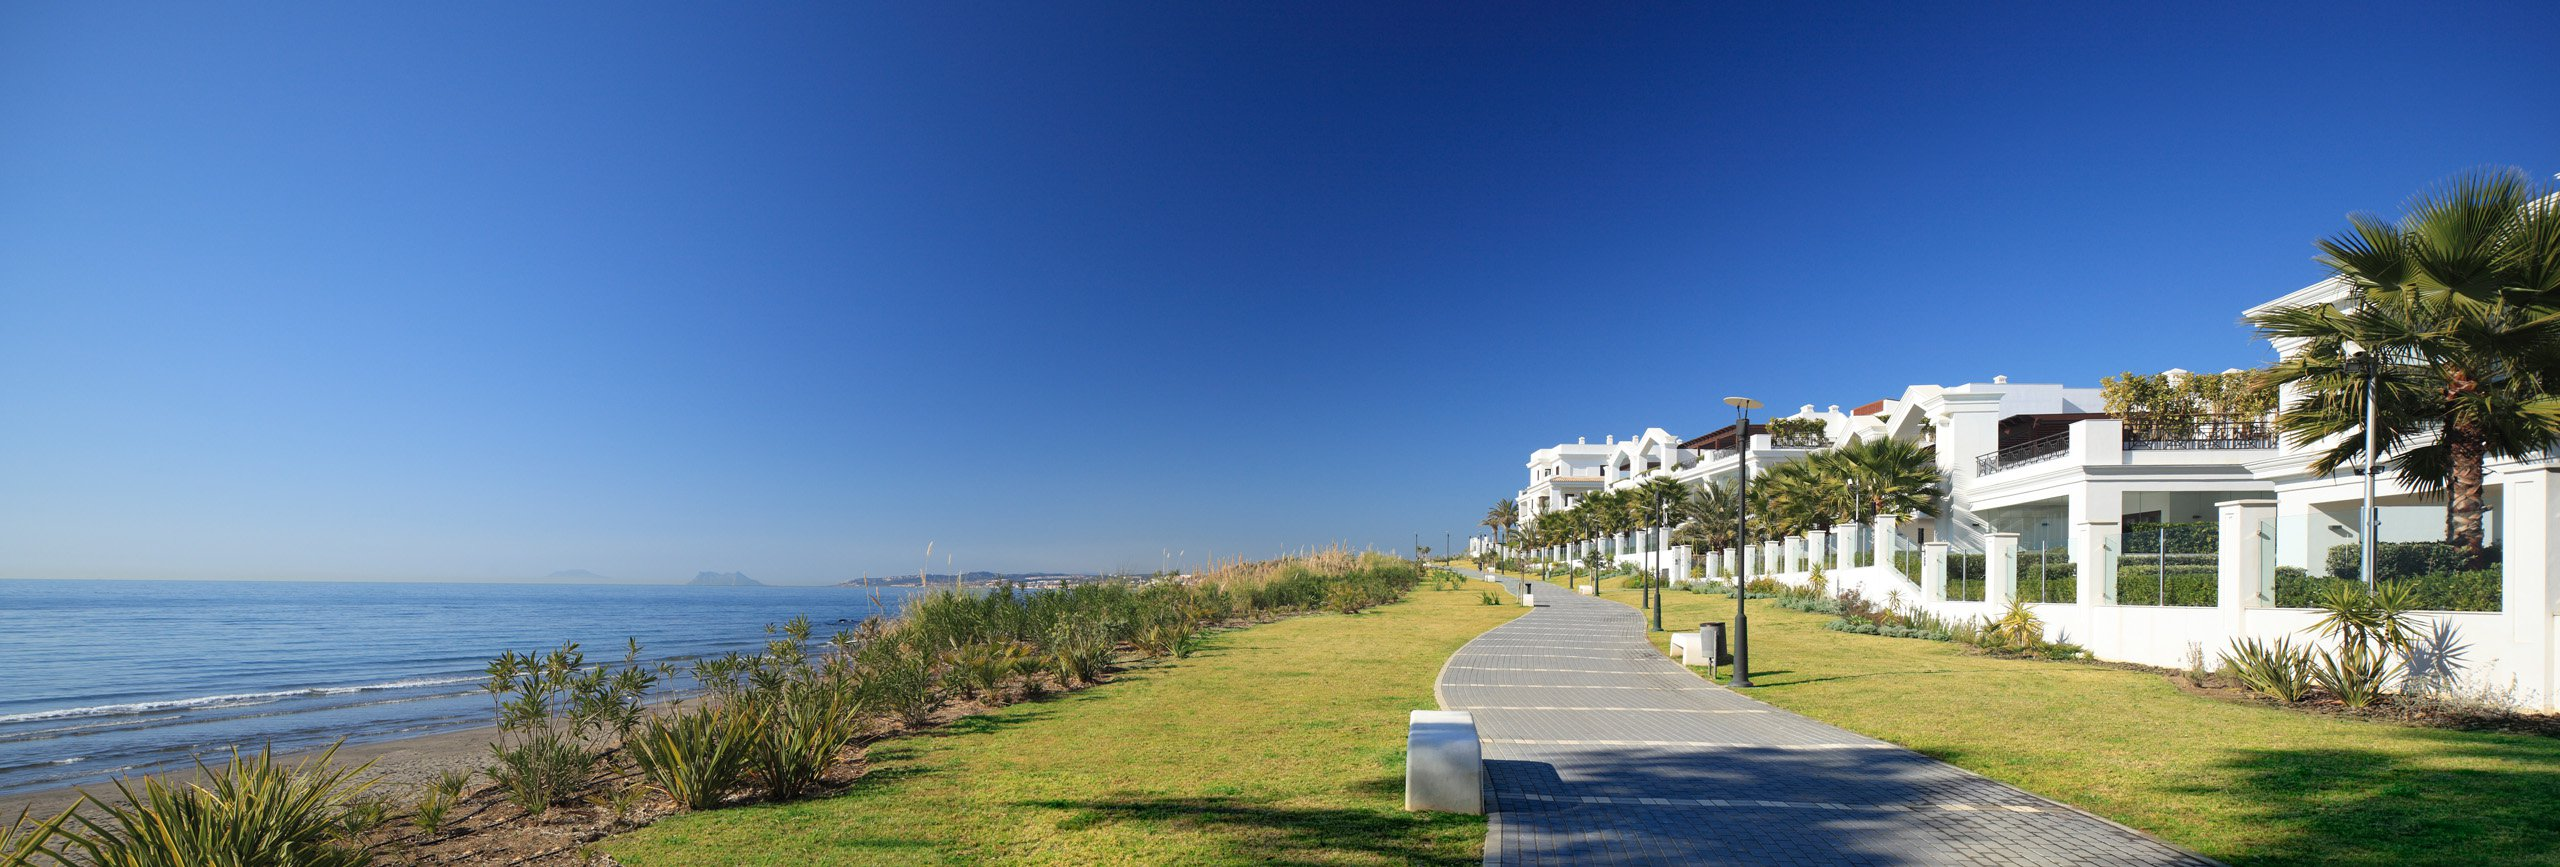 Photo of: Doncella Beach - Doncella Beach | Deluxe Residential complex in the town of Estepona (Costa del Sol), beachfront apartments, penthouses and duplex from 1 to 5 bedrooms.